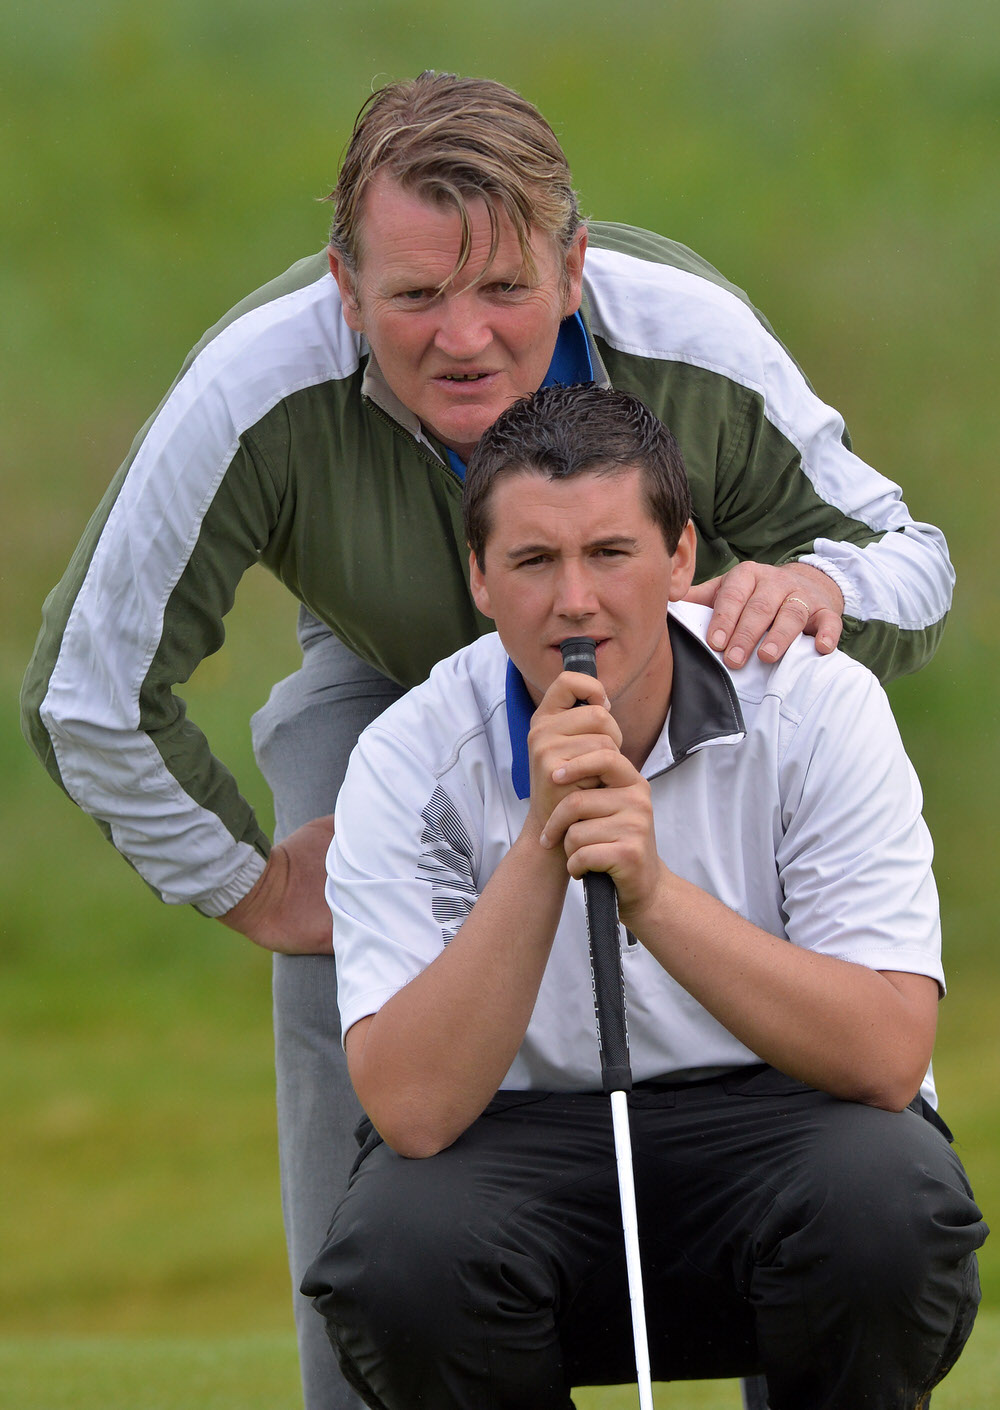 Colm Campbell (Warrenpoint) and his caddy Paddy Gribben lining up a putt on the 9th green in the final round of the  2014 East of Ireland Championship  at County Louth Golf Club, where he edged out Paul Dunne by two strokes to win the title. Picture by  Pat Cashman